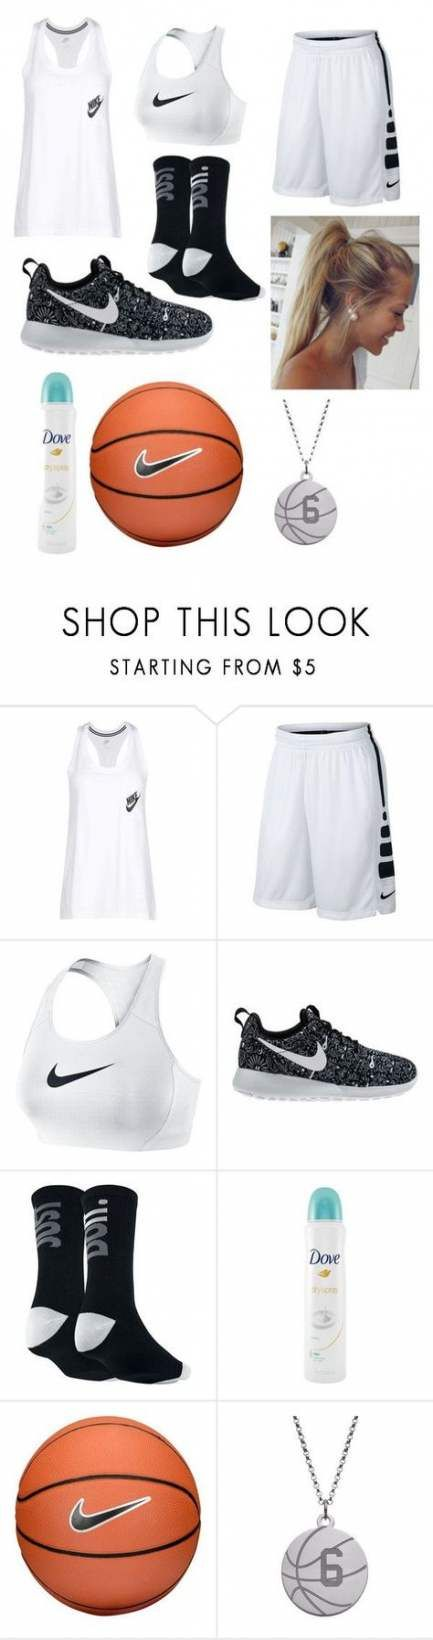 Basket ball clothes fitness 21+ Ideas #fitness #clothes #basket